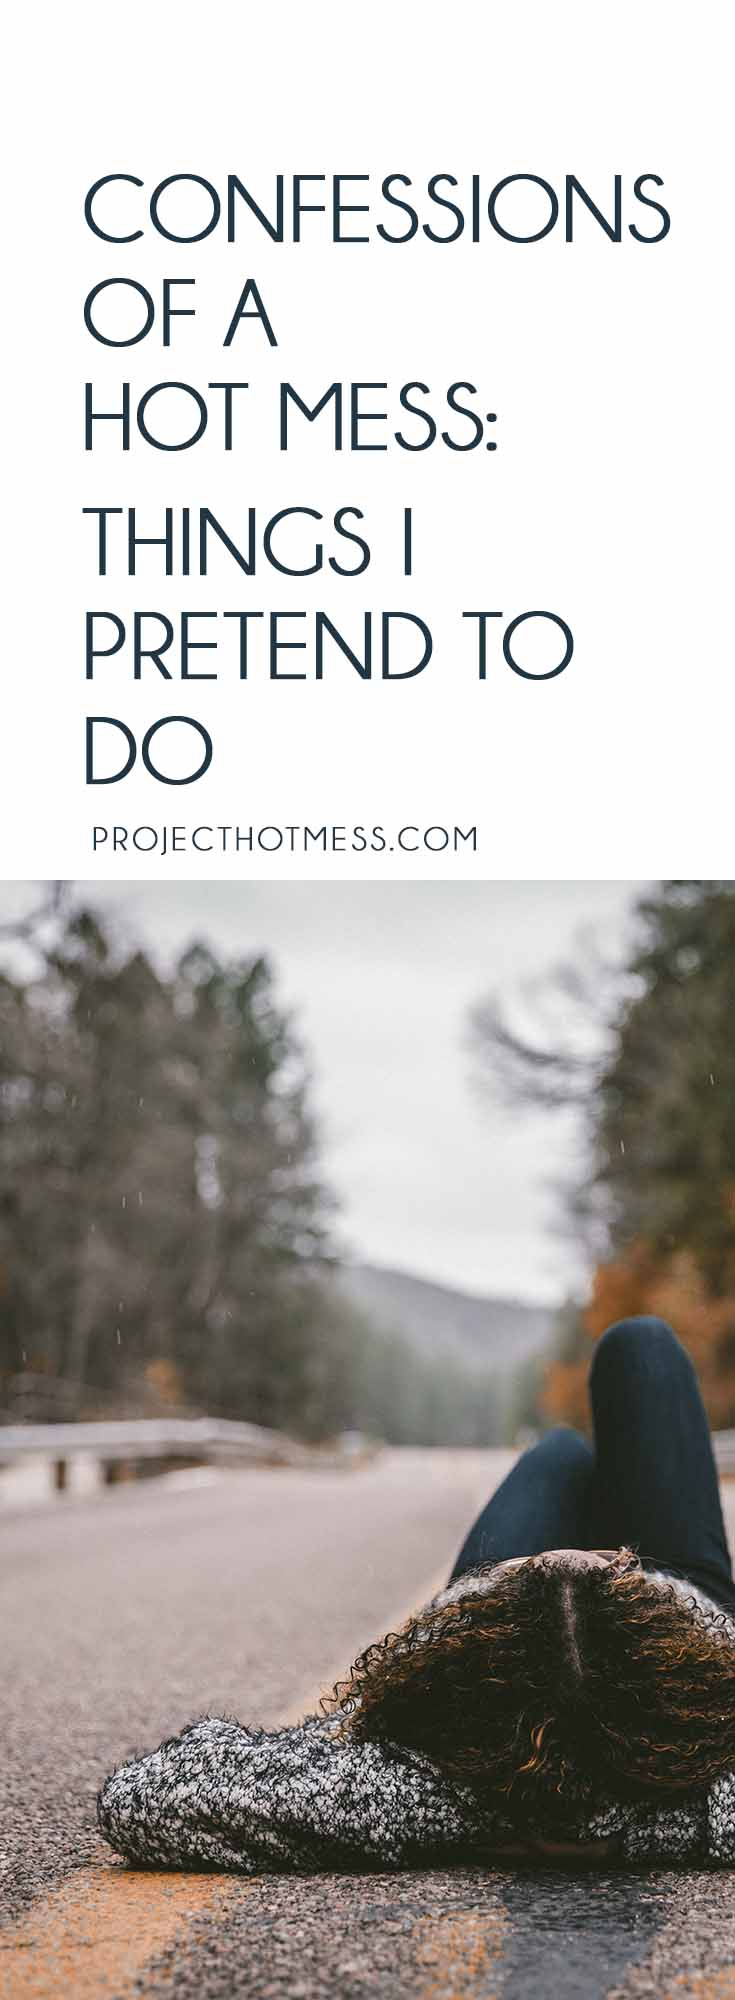 The things I pretend to do help me look like I have everything together when I assure you I don't even come close. There's no harm in faking it, right? Hot Mess   Life Lessons   Mum Life   Motherhood   Millennials   Life Balance   Fake It   Pretend To Do